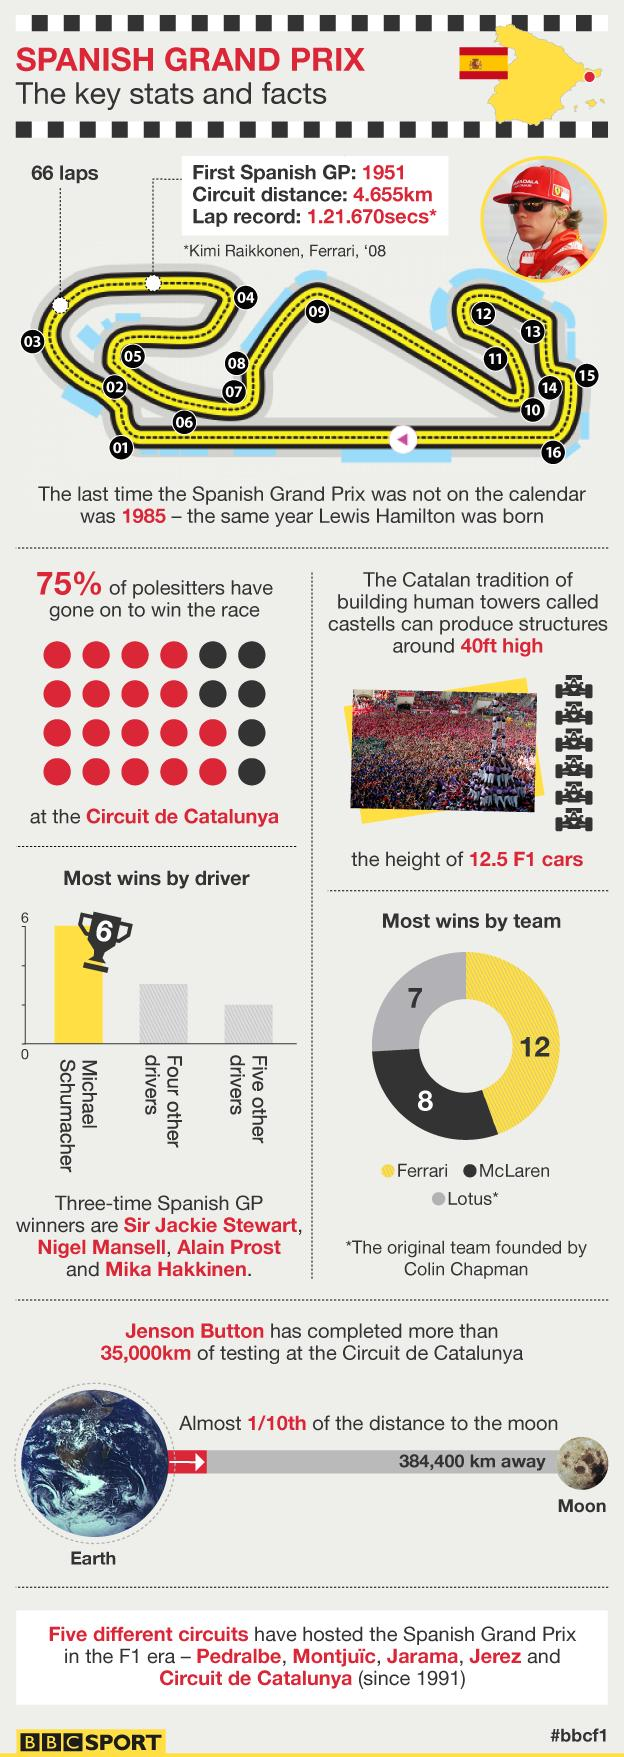 Spanish Grand Prix in numbers